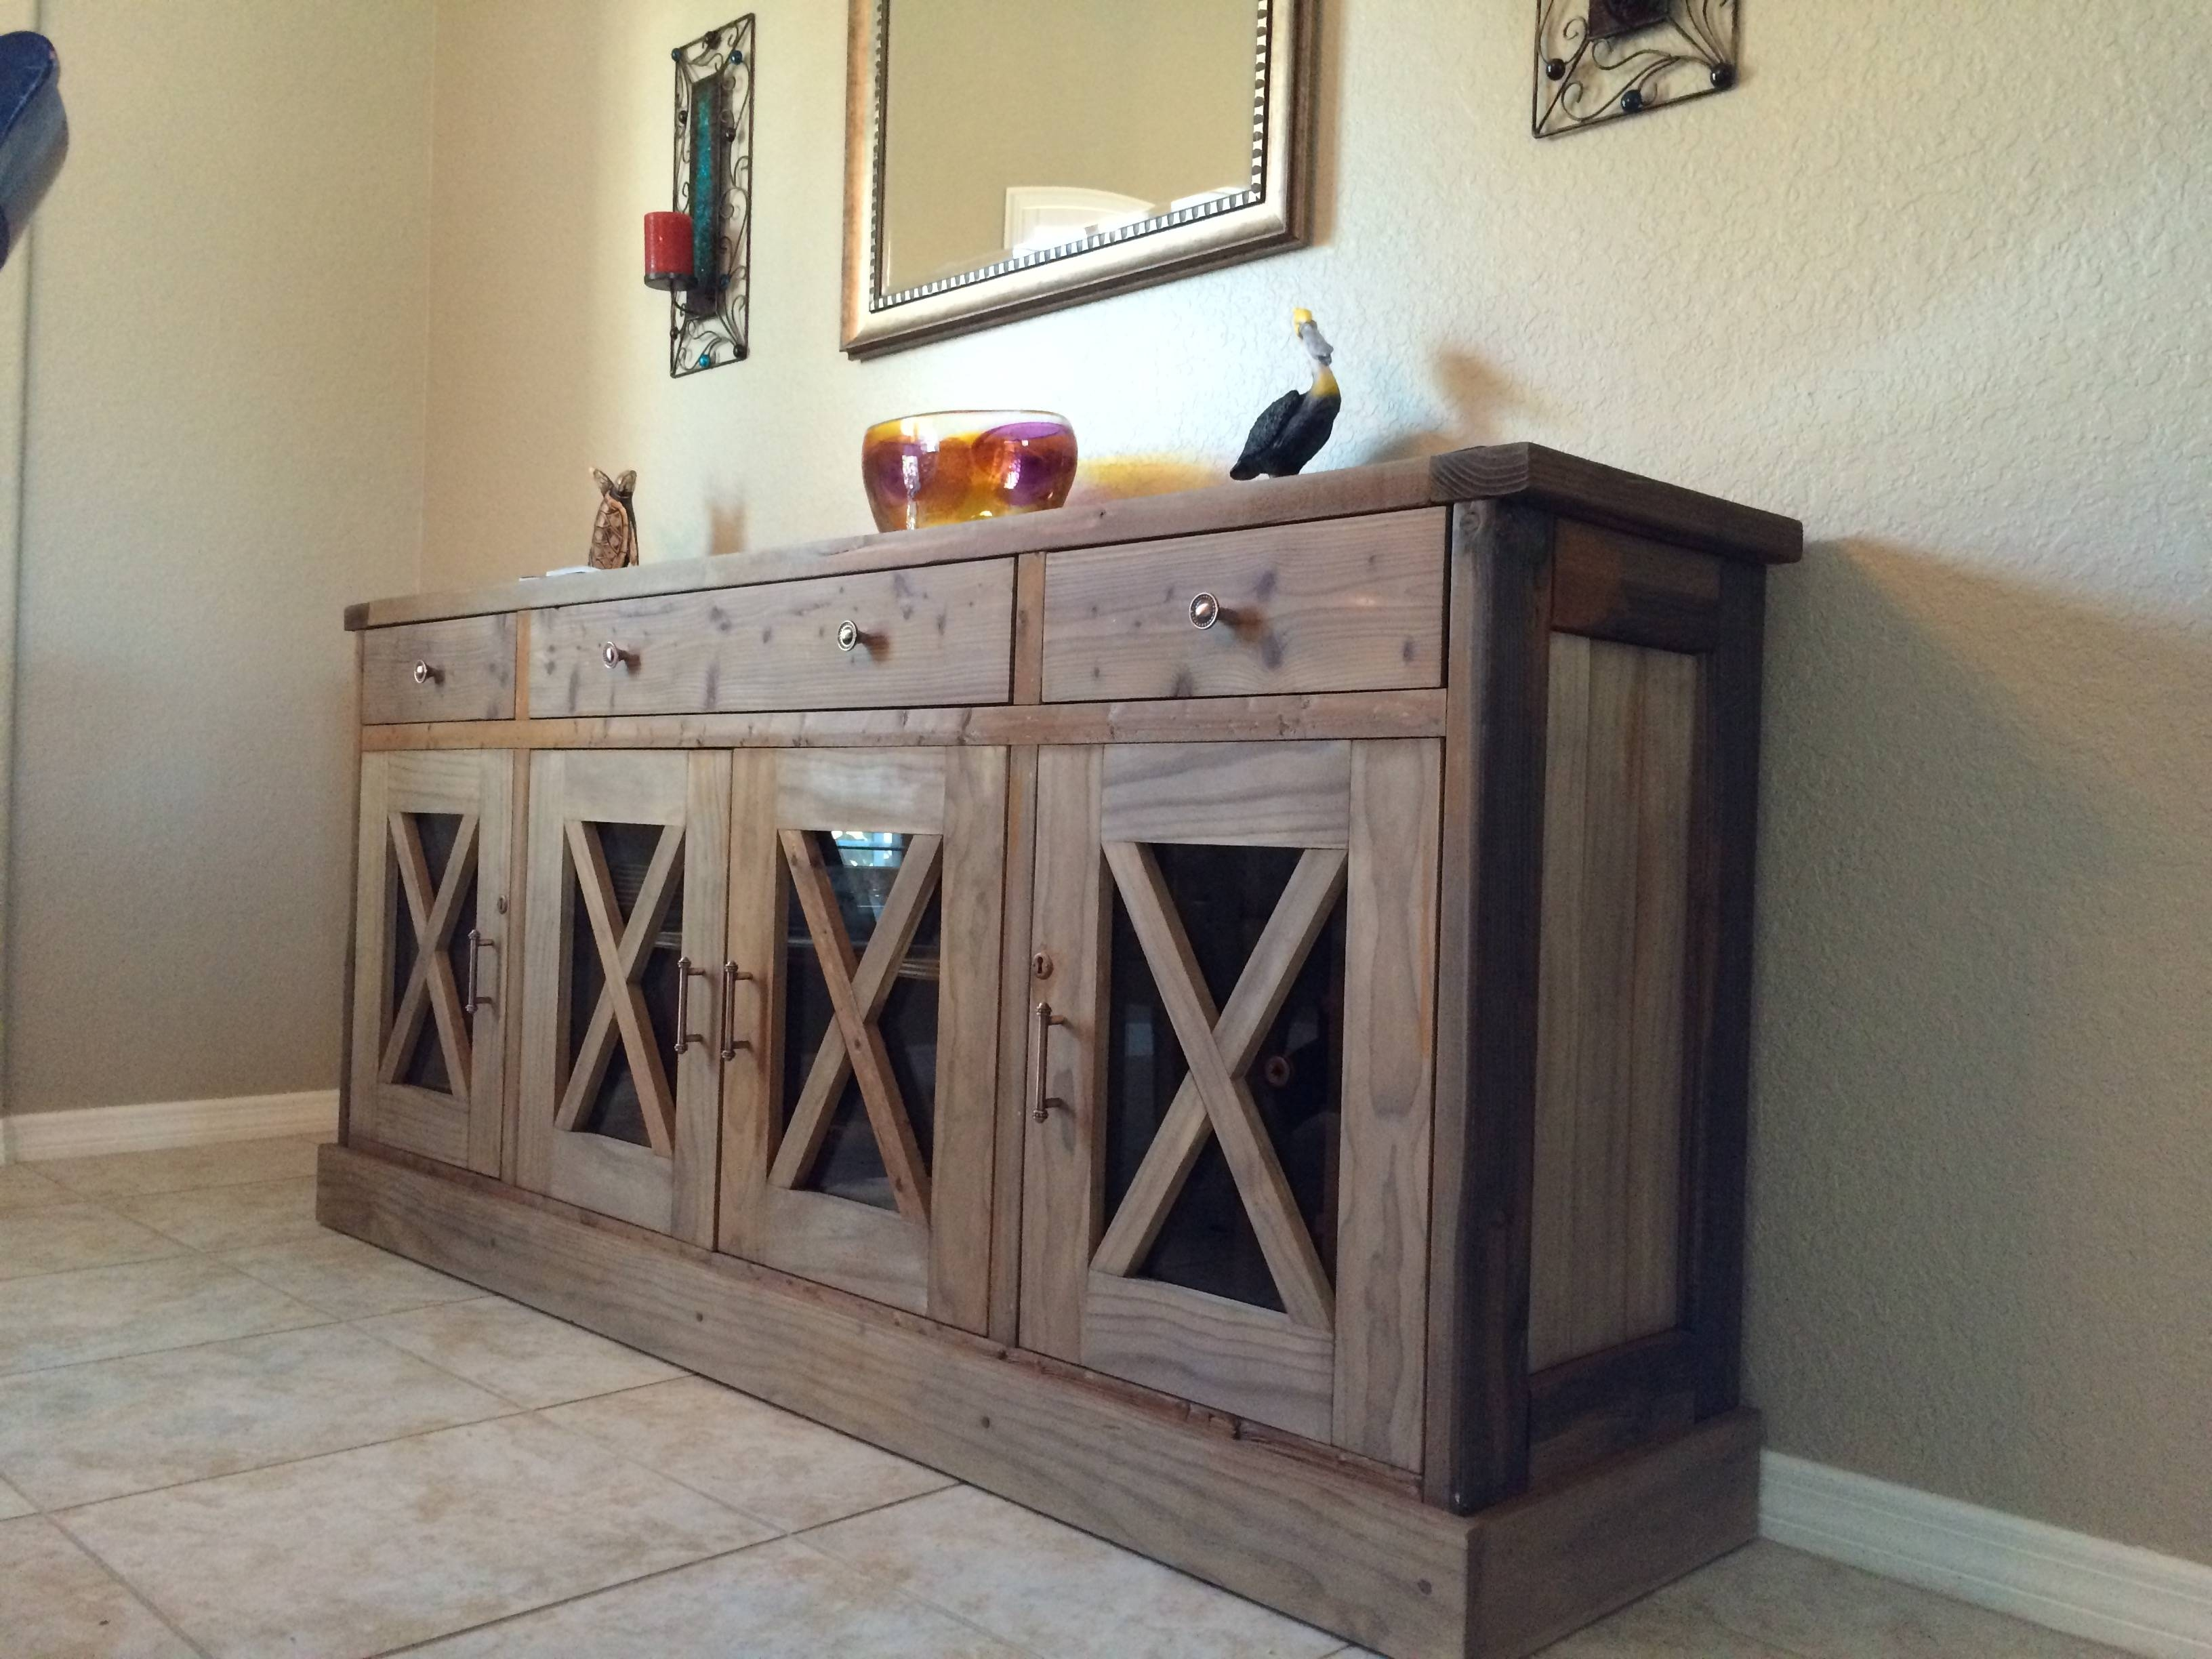 Ana White | Dining Room Sideboard – Diy Projects Intended For 2018 Diy Sideboards (#1 of 15)